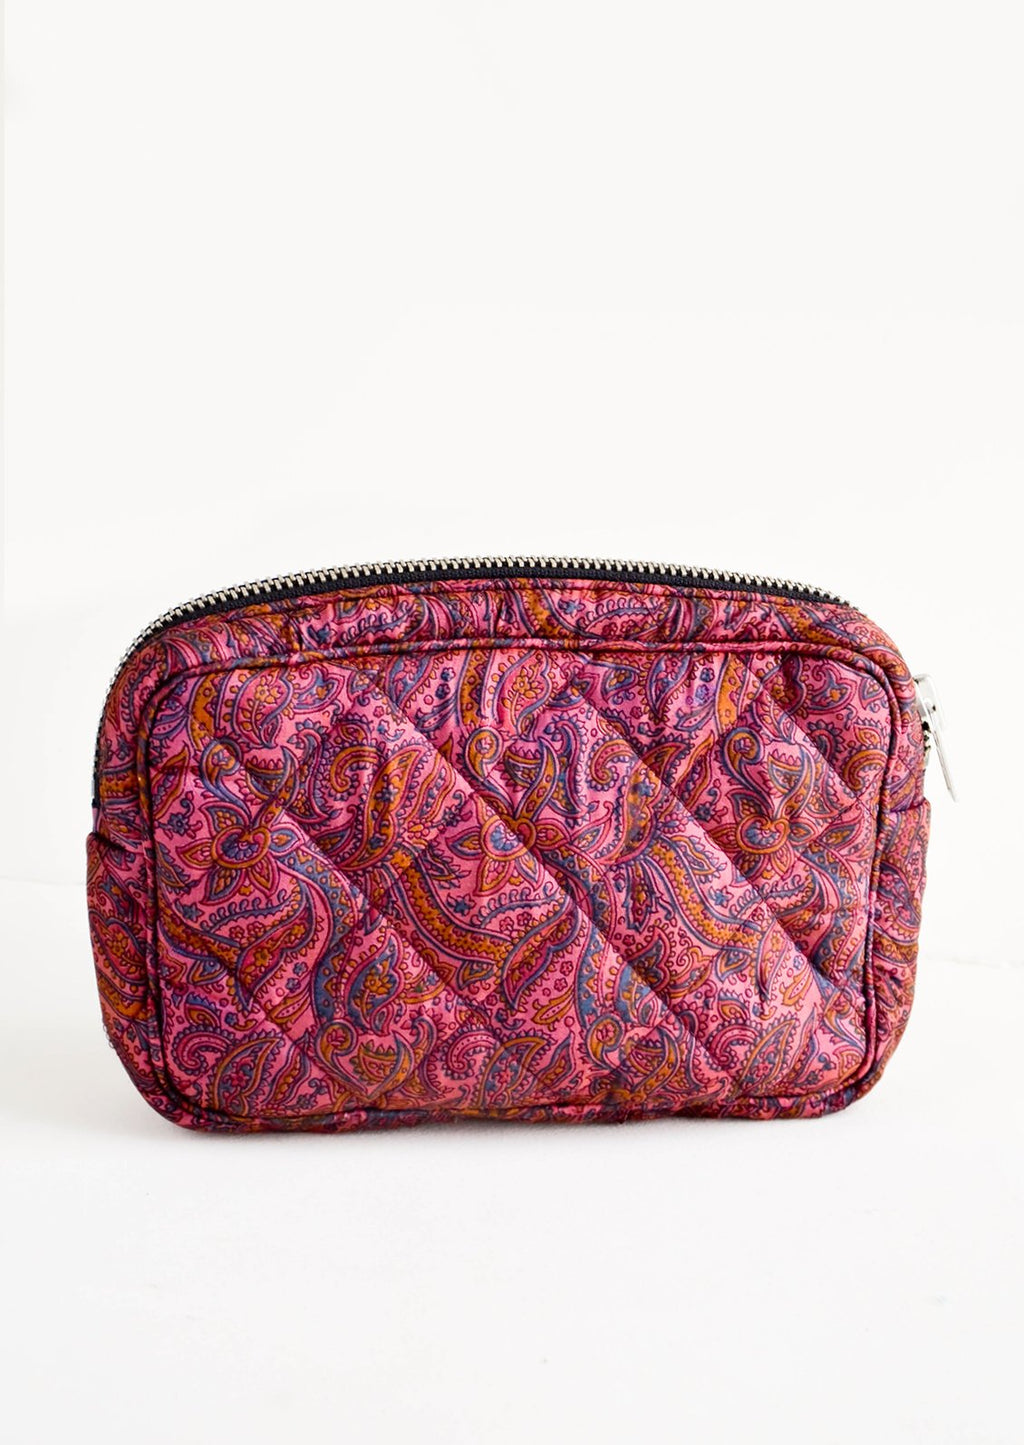 Small / Plum Floral Paisley: Flat and rectangular makeup travel bag with zip closure in plum paisley print